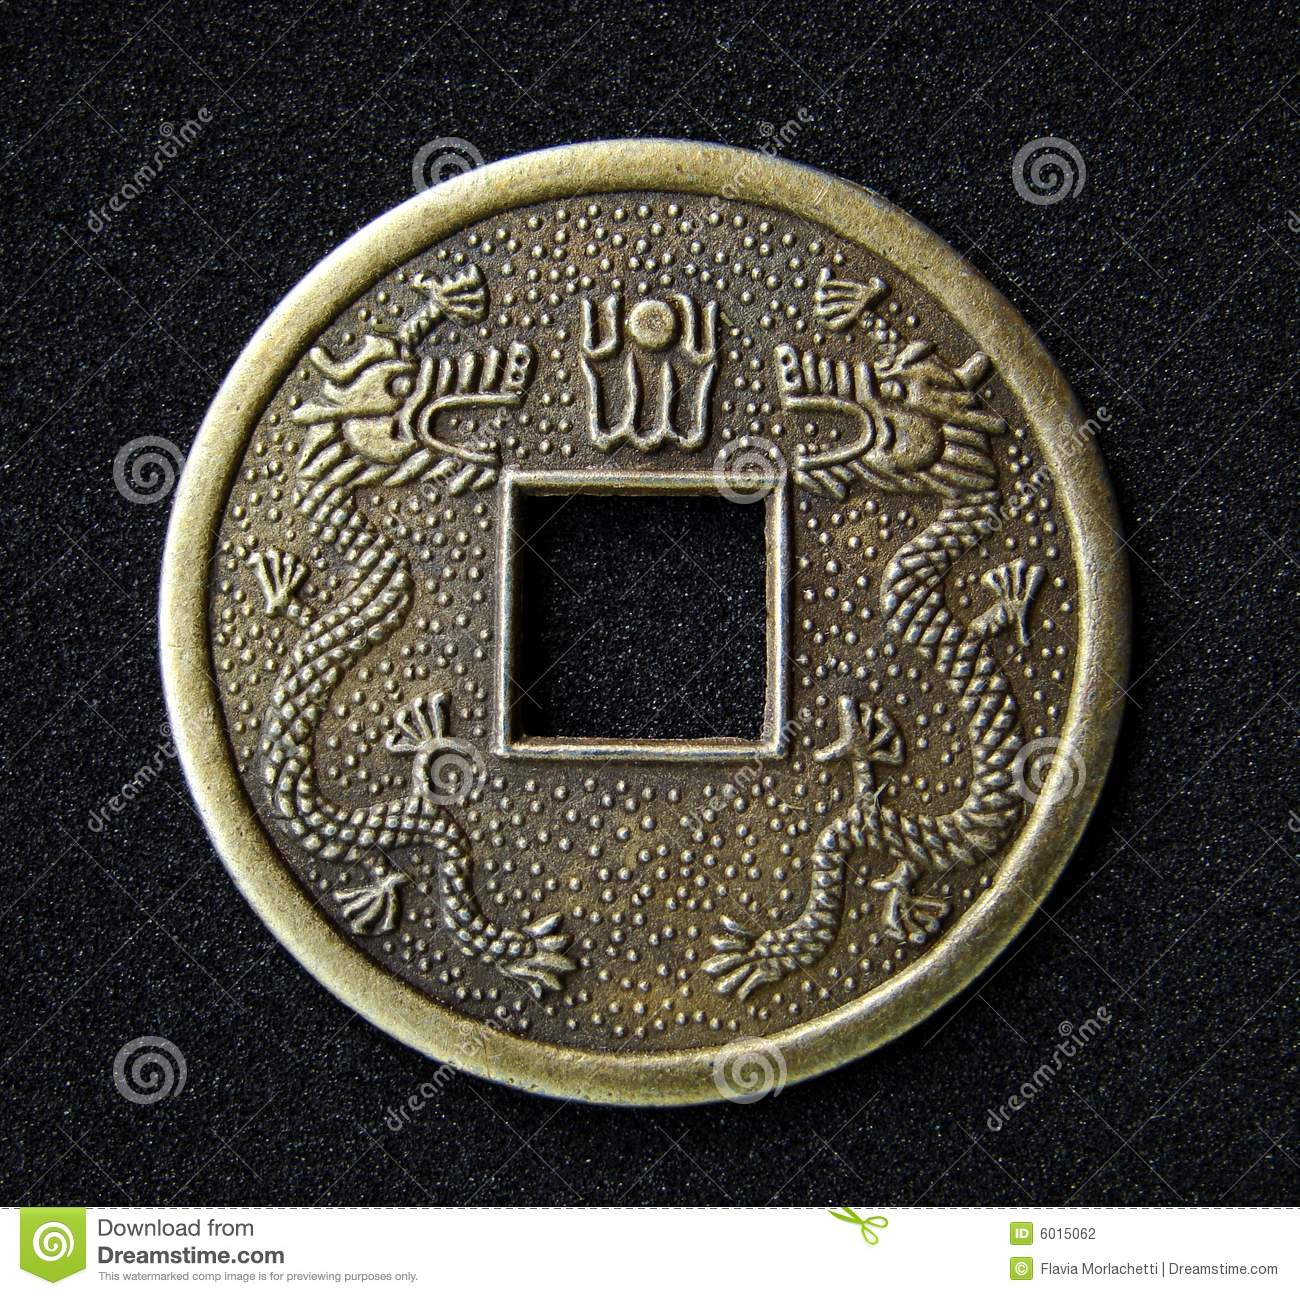 Chinese feng shui coin stock photography image 6015062 - Feng shui good luck coins ...